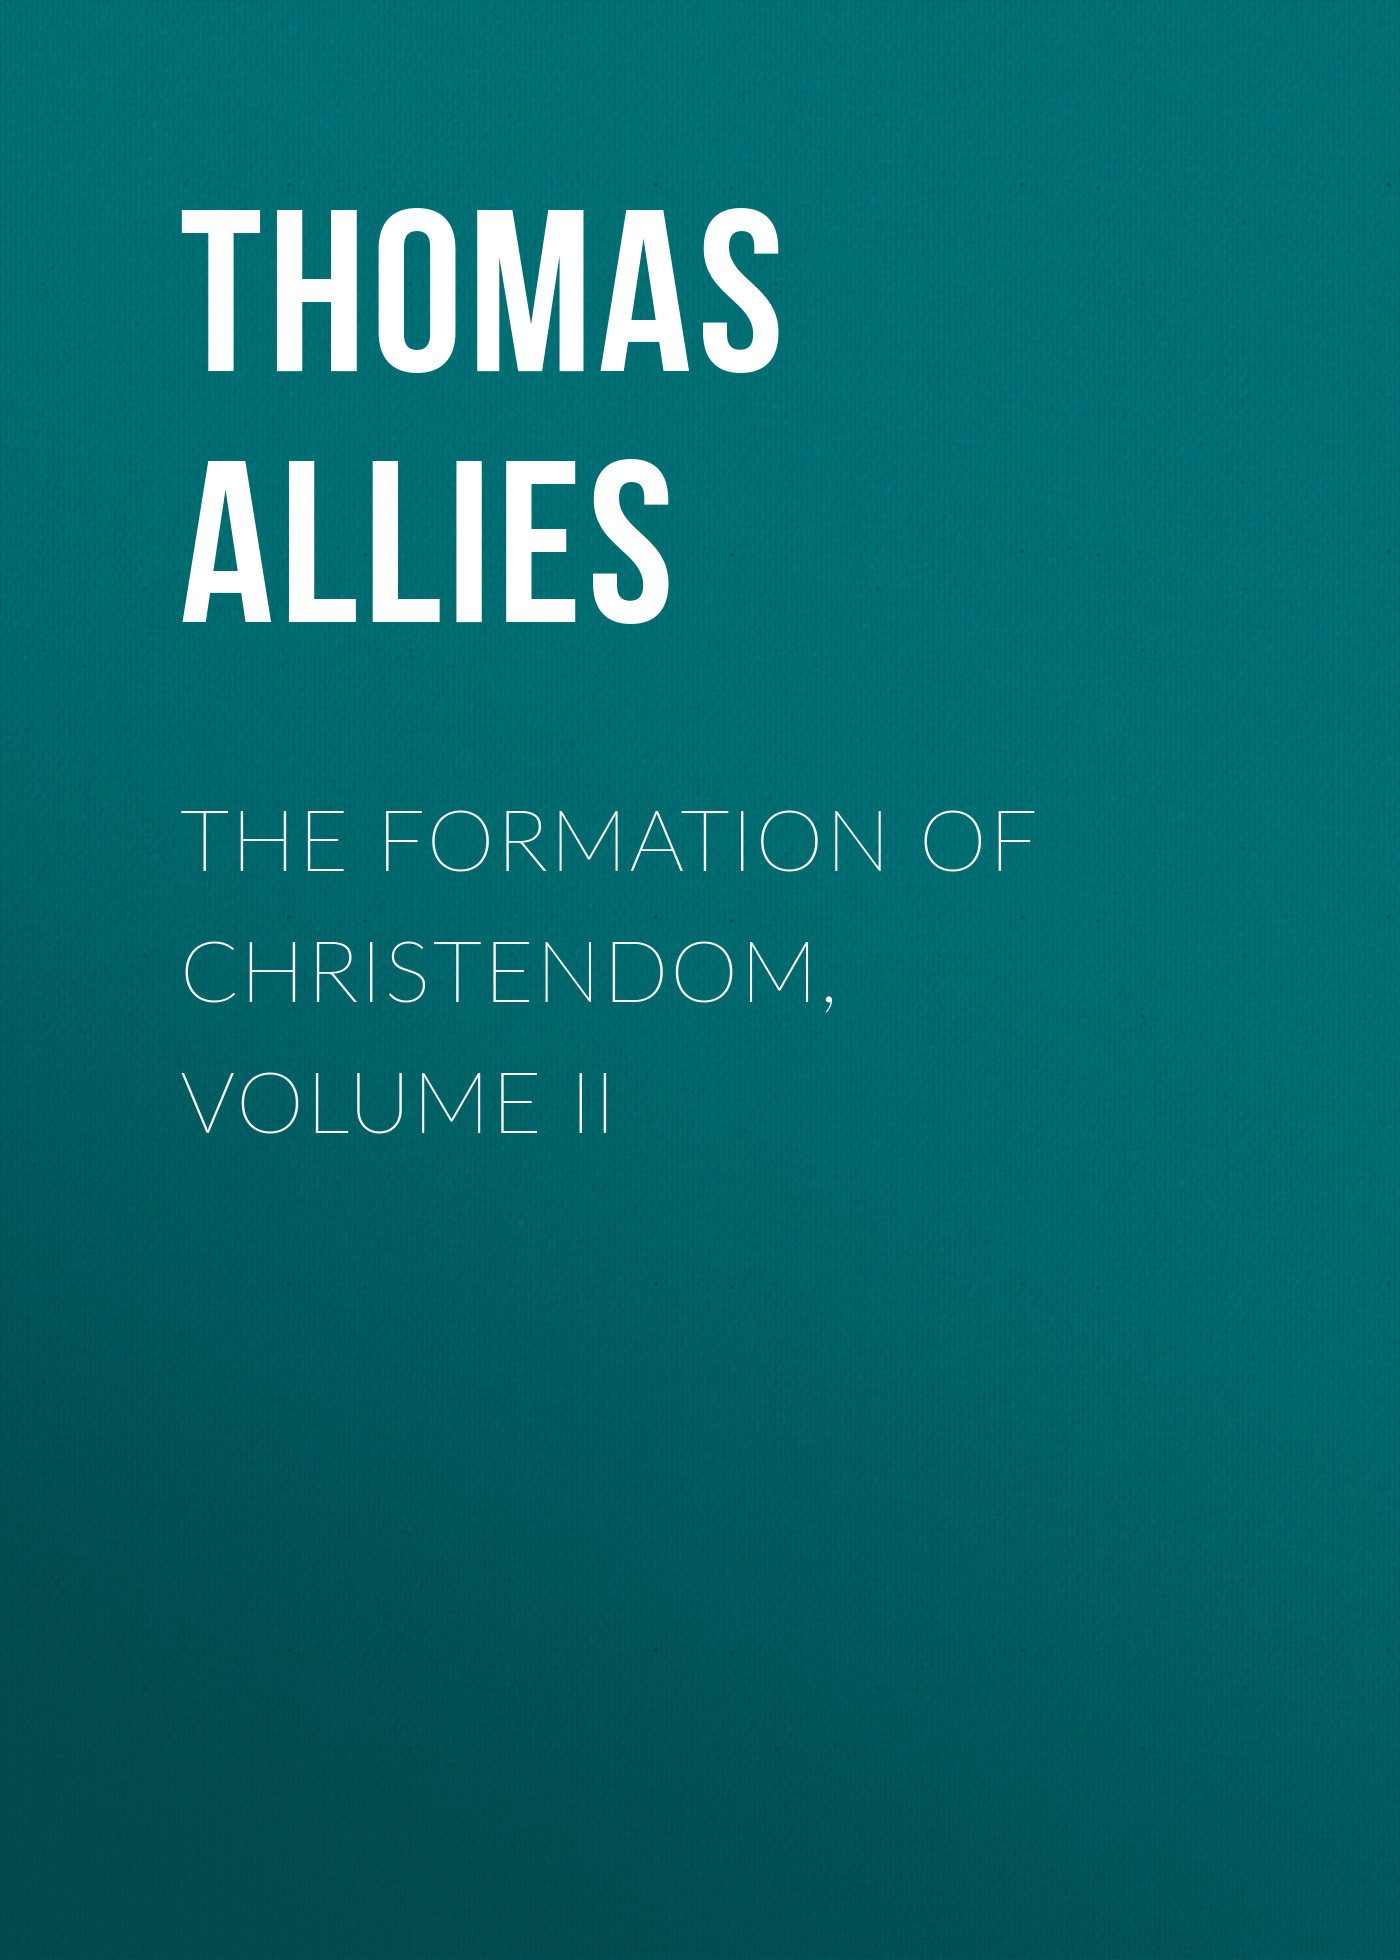 Allies Thomas William The Formation of Christendom, Volume II formation formation look at the powerful people